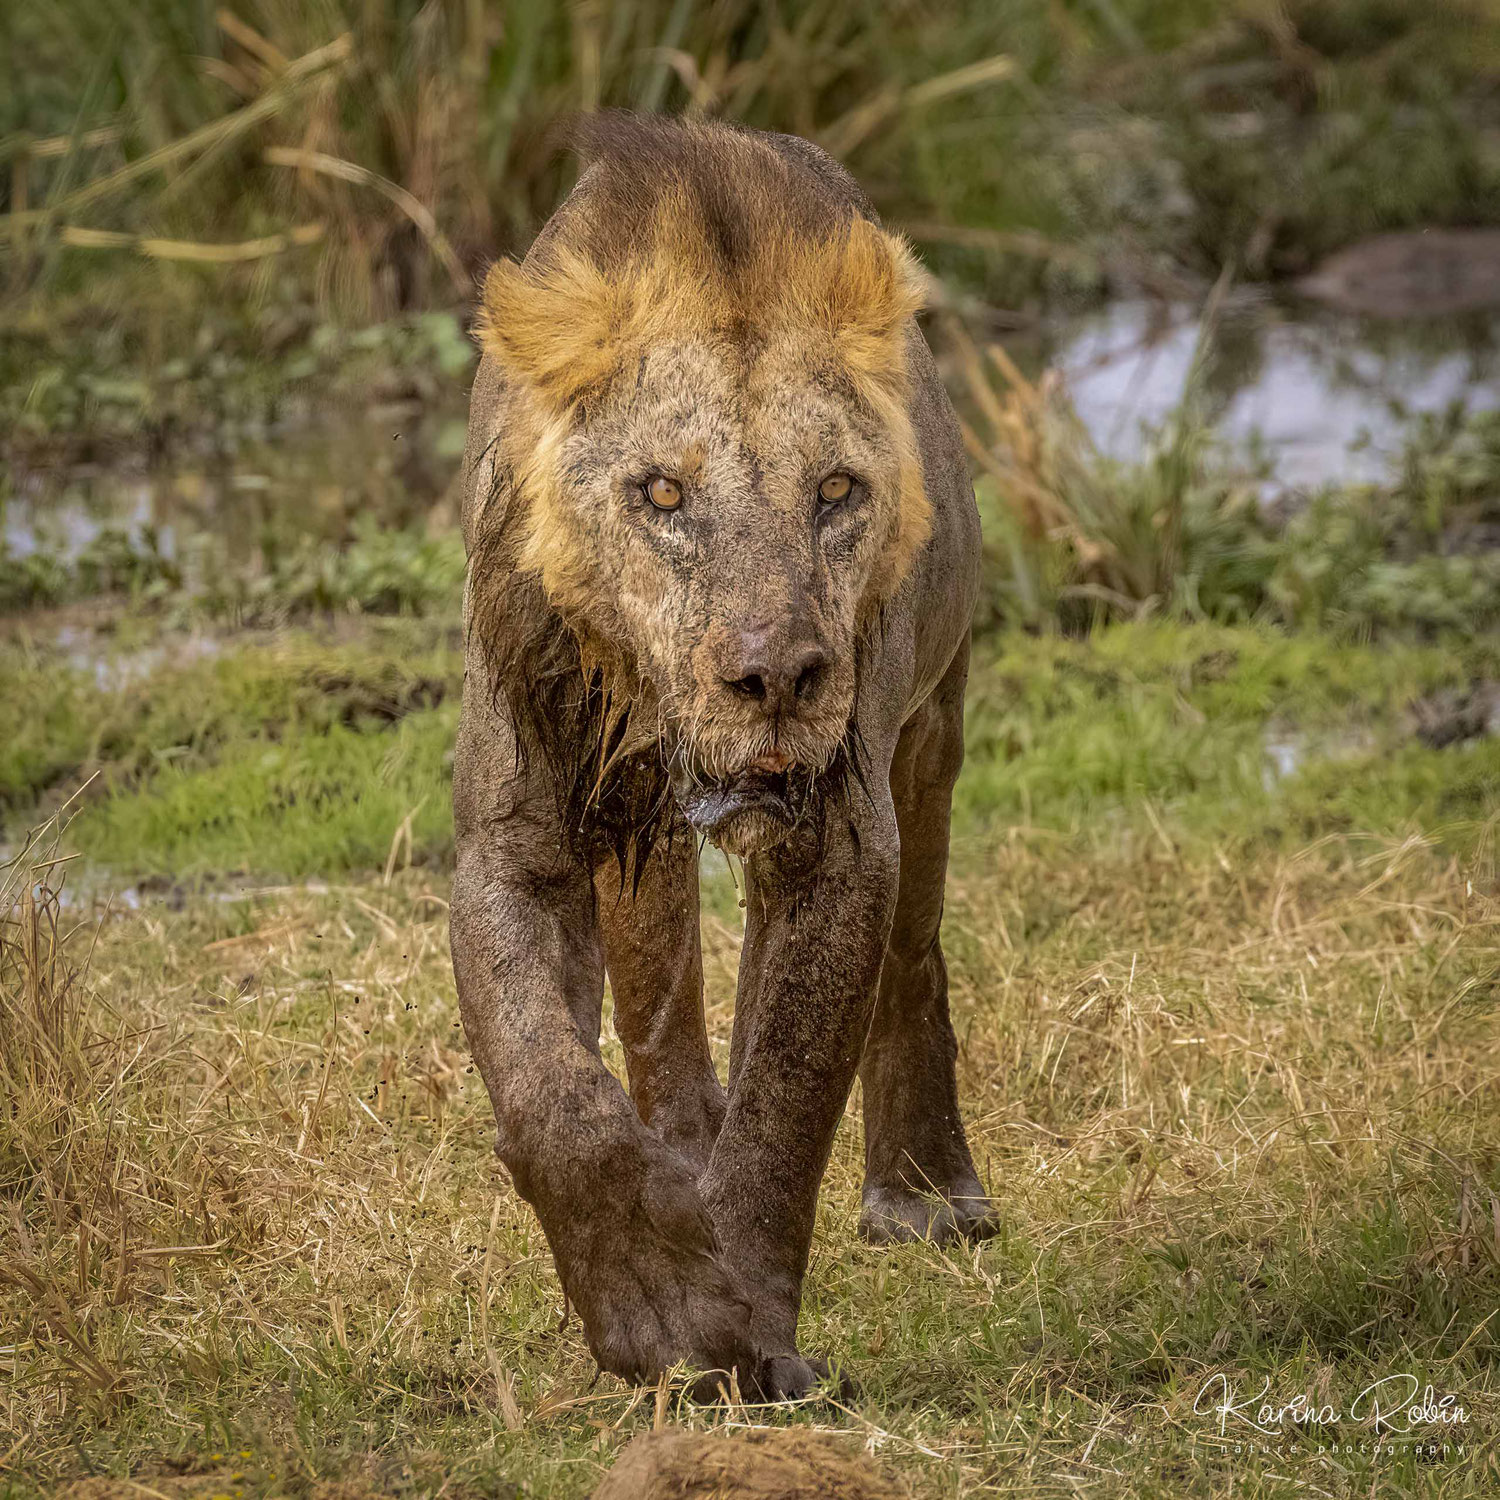 Meeting Loonkito, the world's oldest wild lion